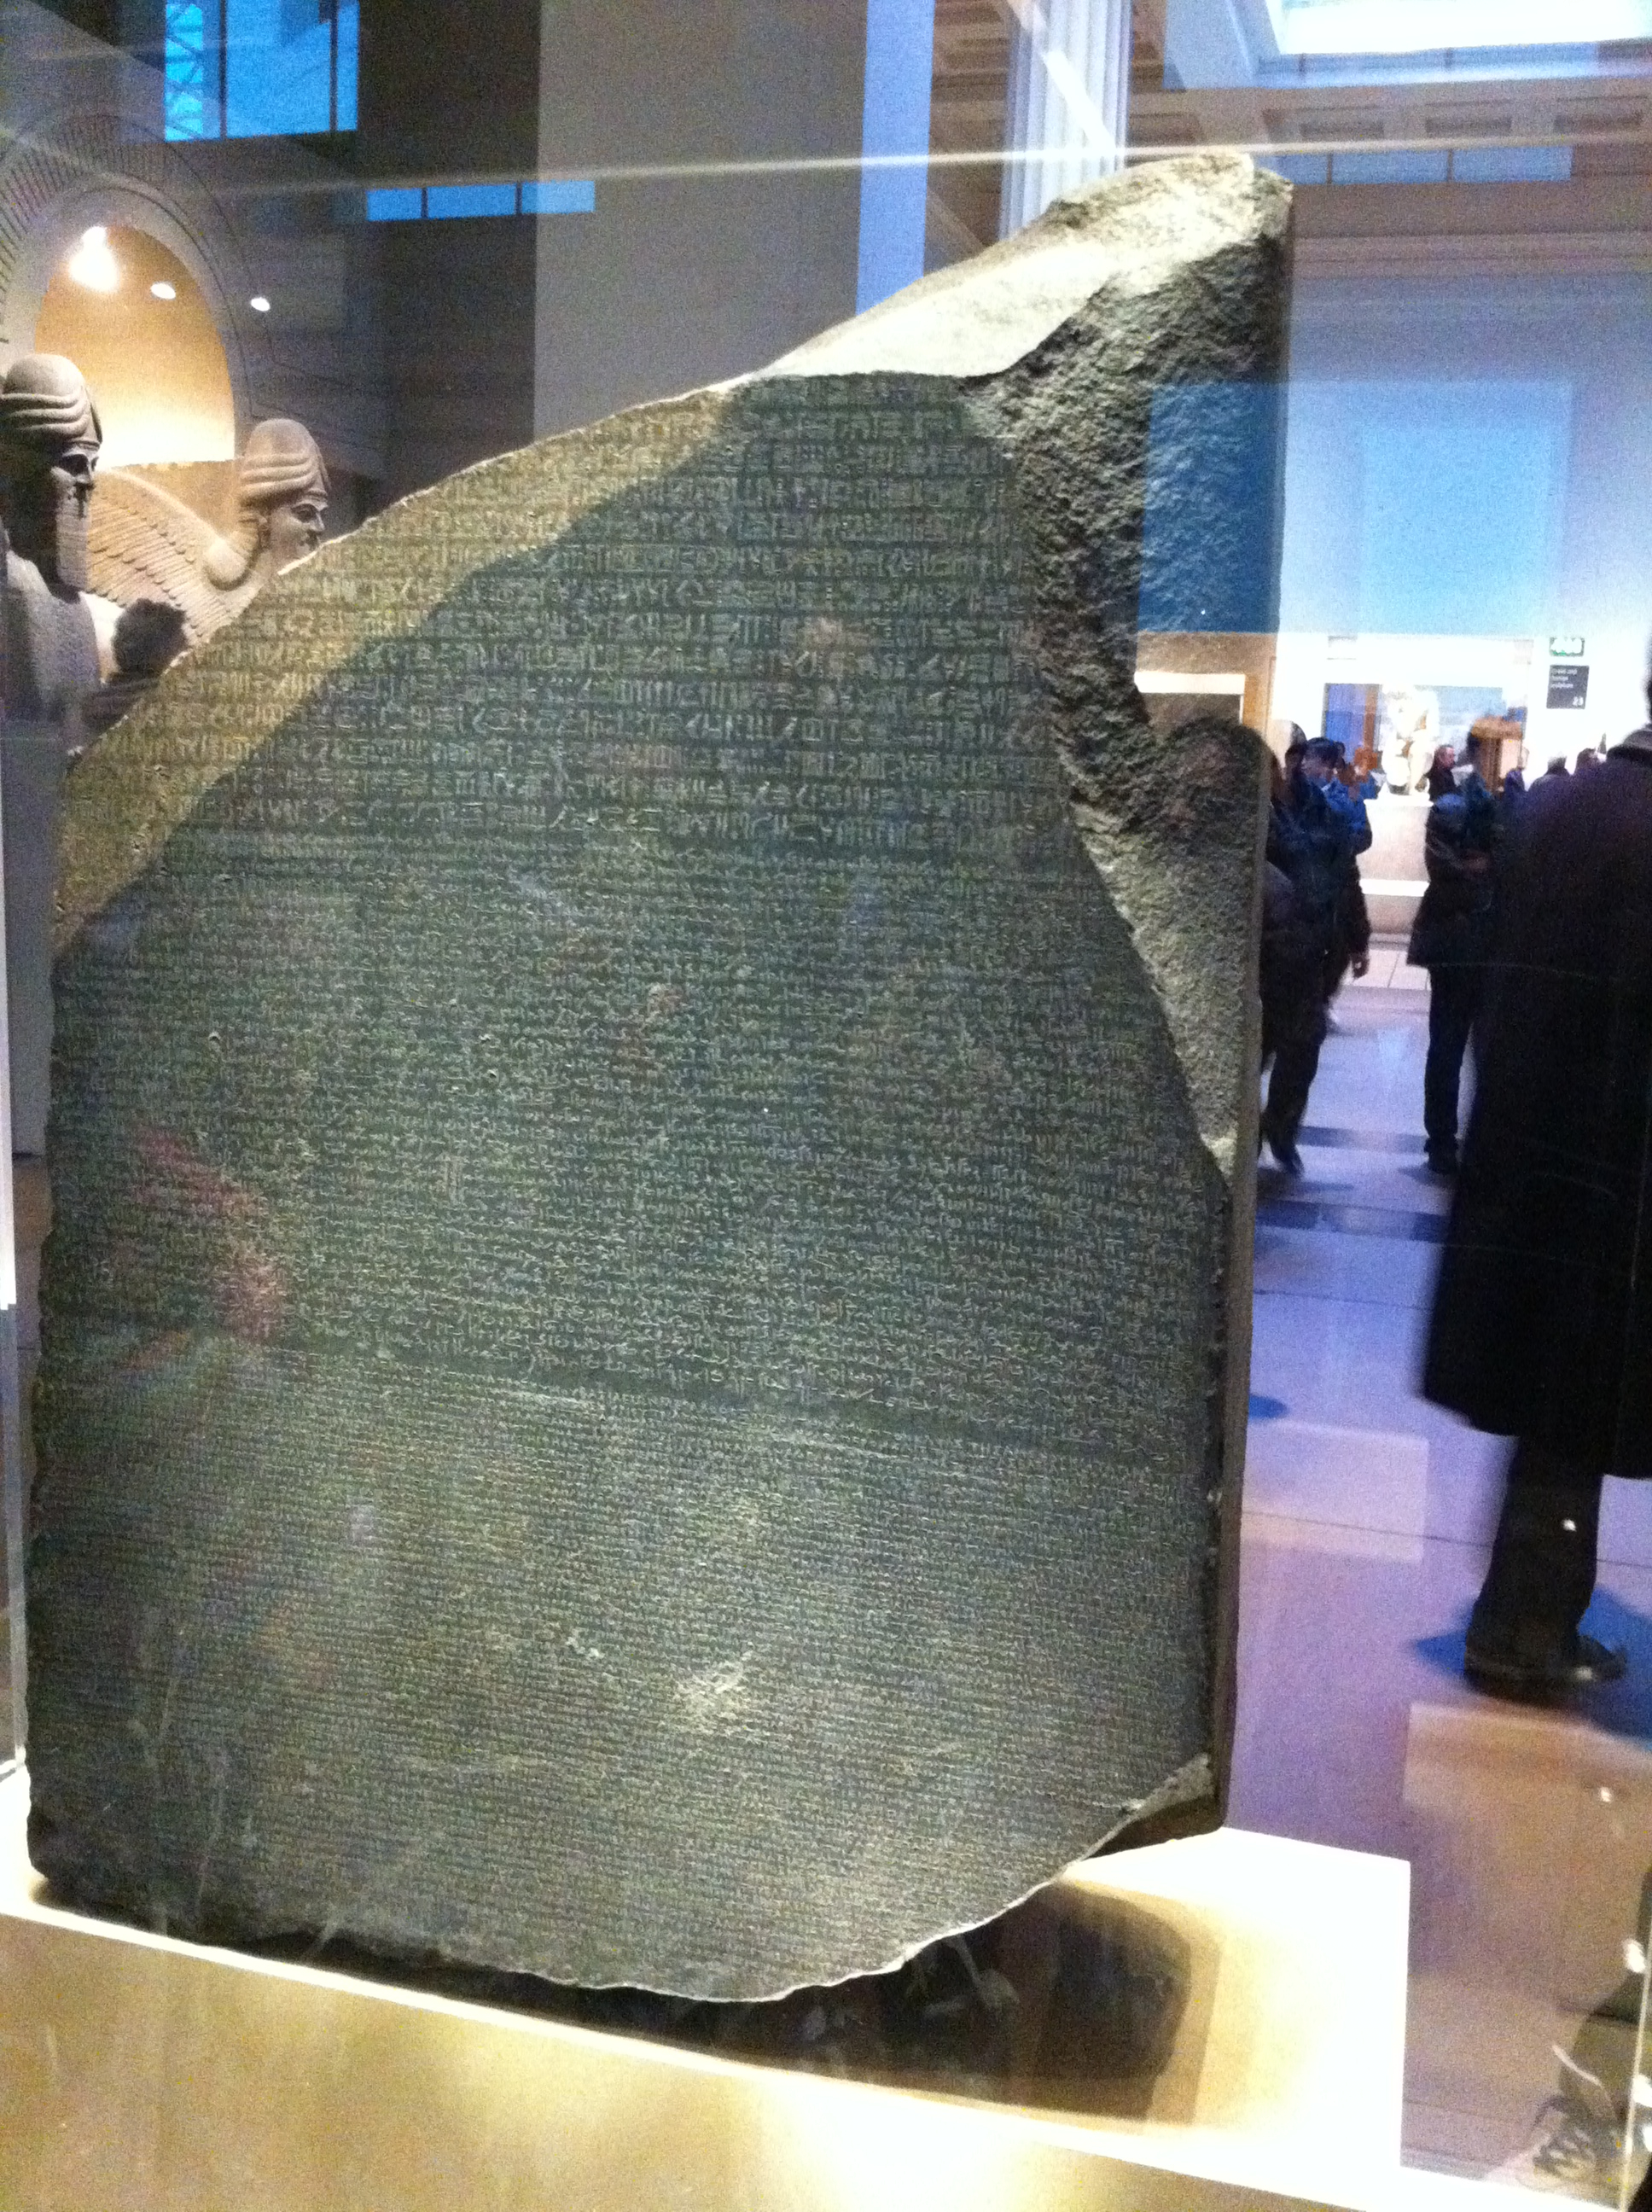 File:The Rosetta Stone (5276860305).jpg - Wikimedia Commons